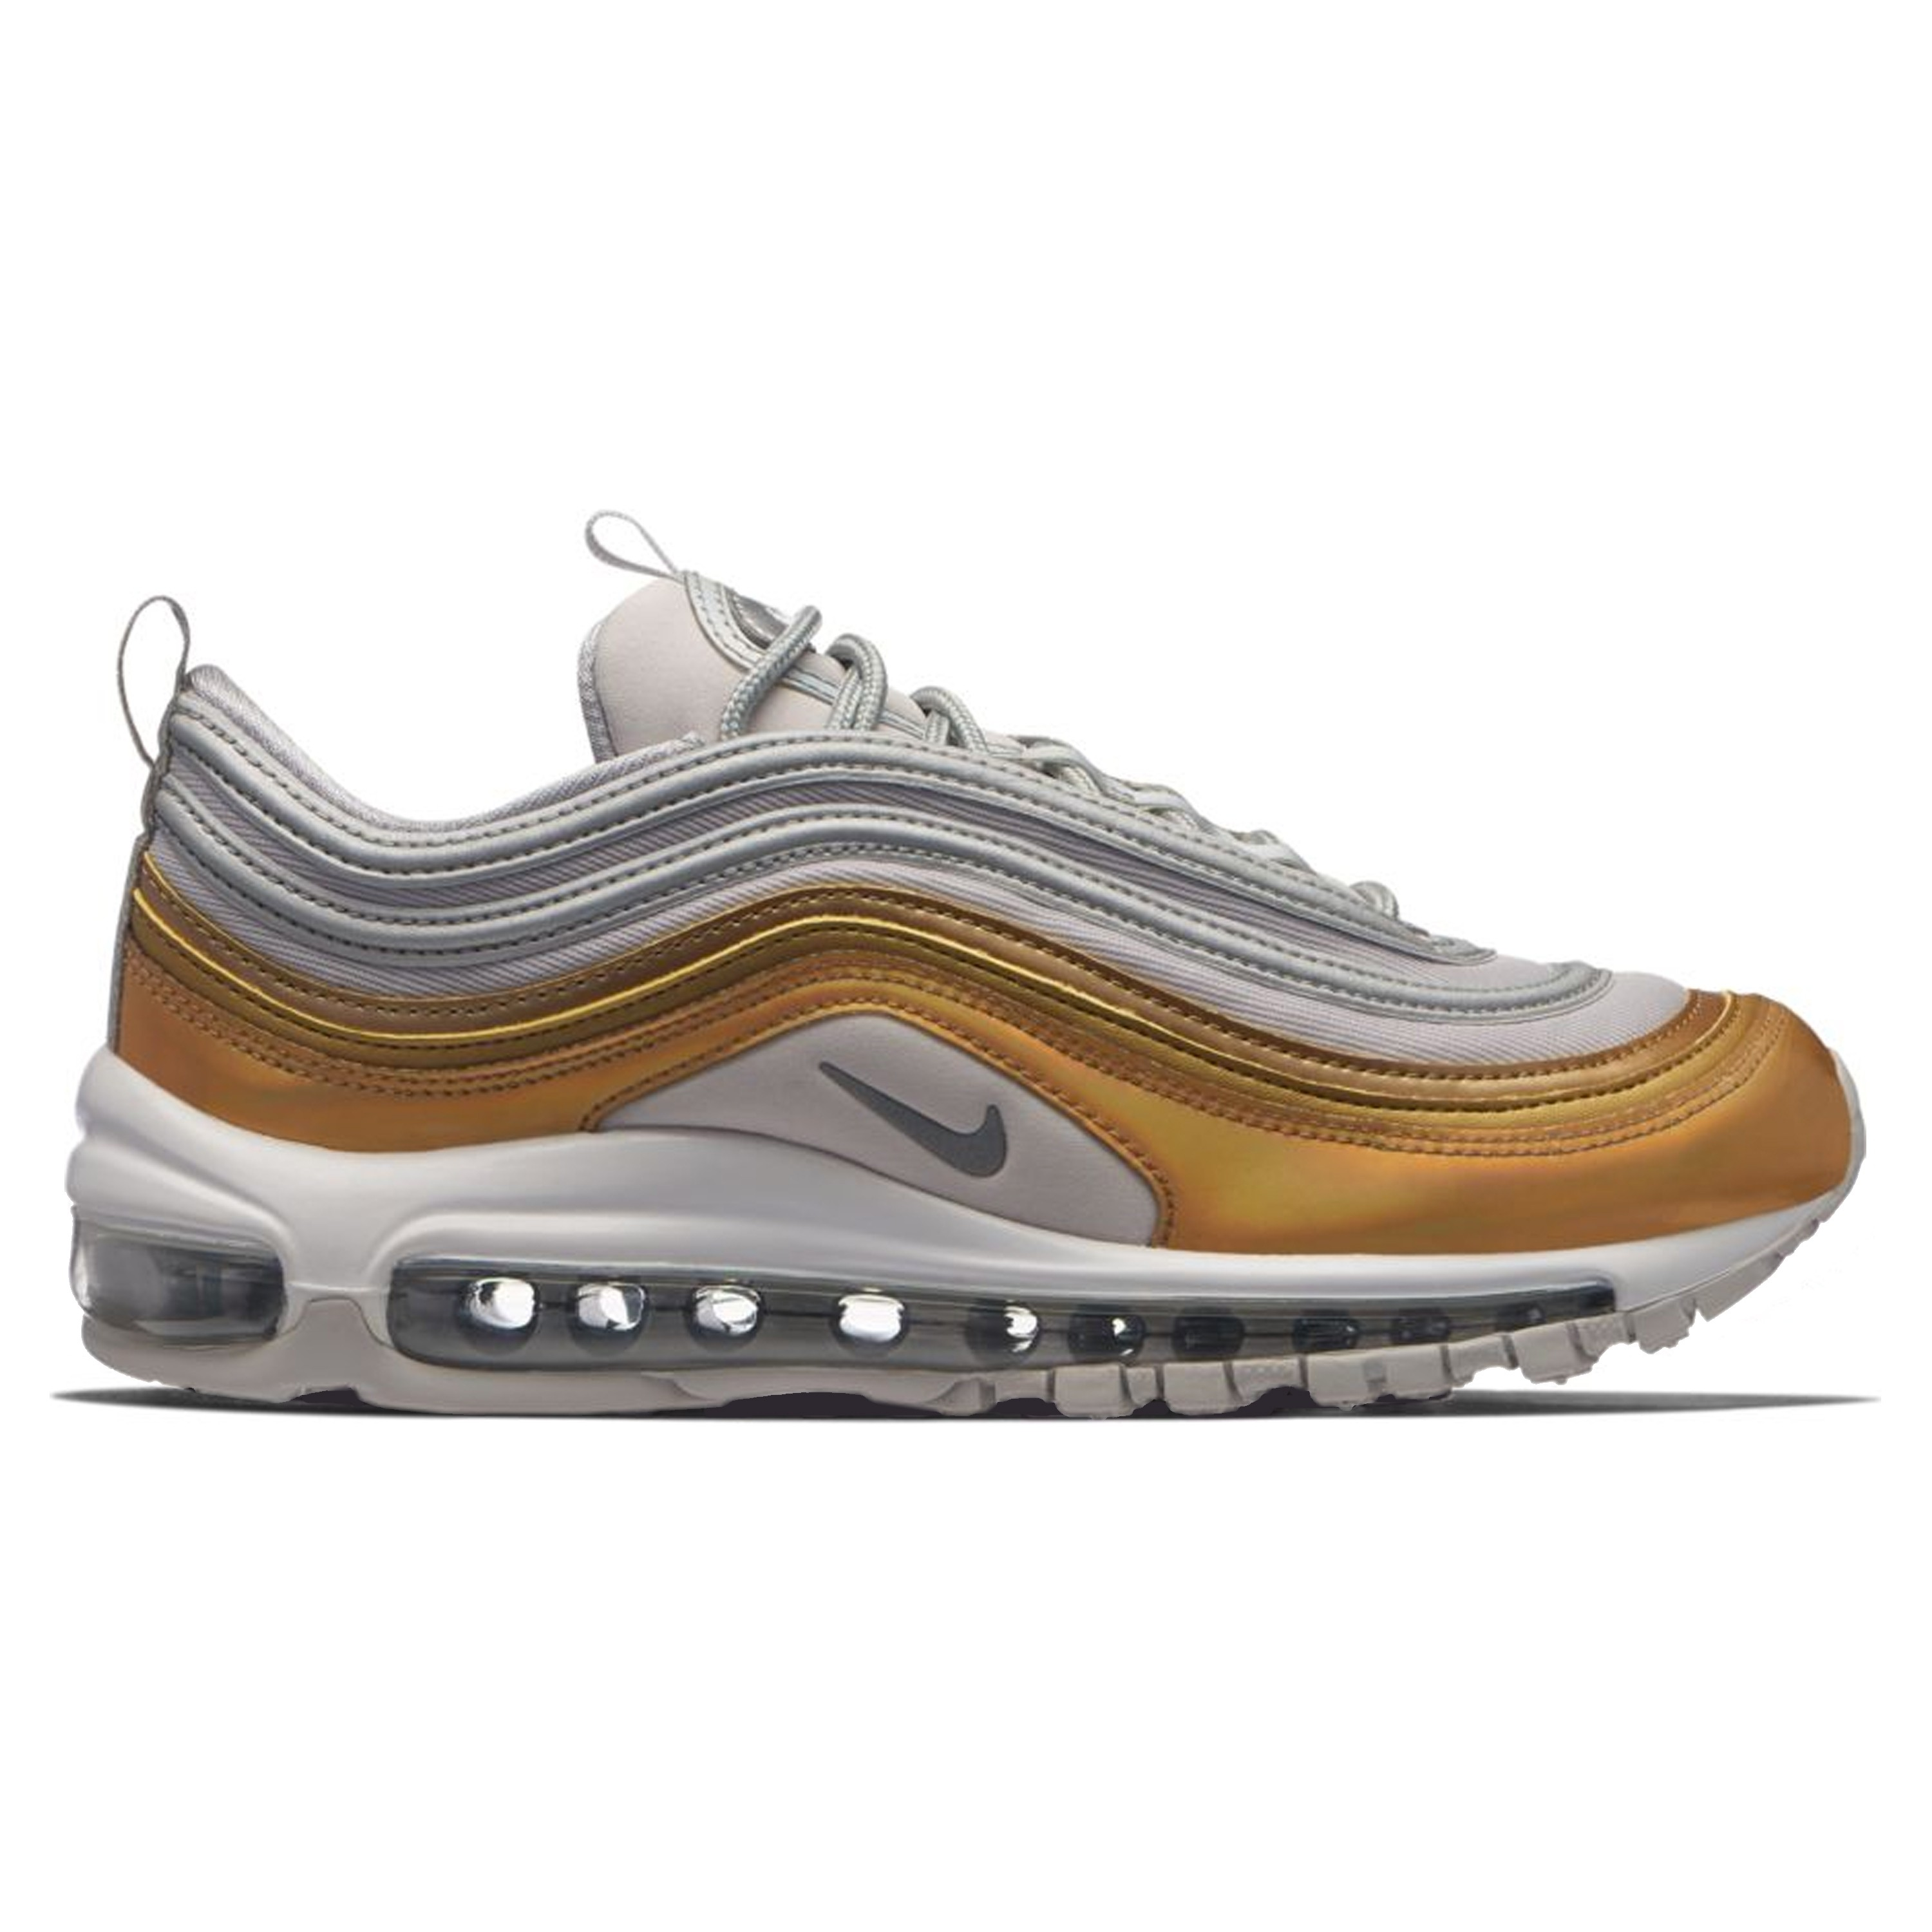 sports shoes f1f90 b5950 Nike Air Max 97 SE WMNS 'Metallic Gold Pack' (Vast Grey/Metallic  Silver-Metallic Gold)